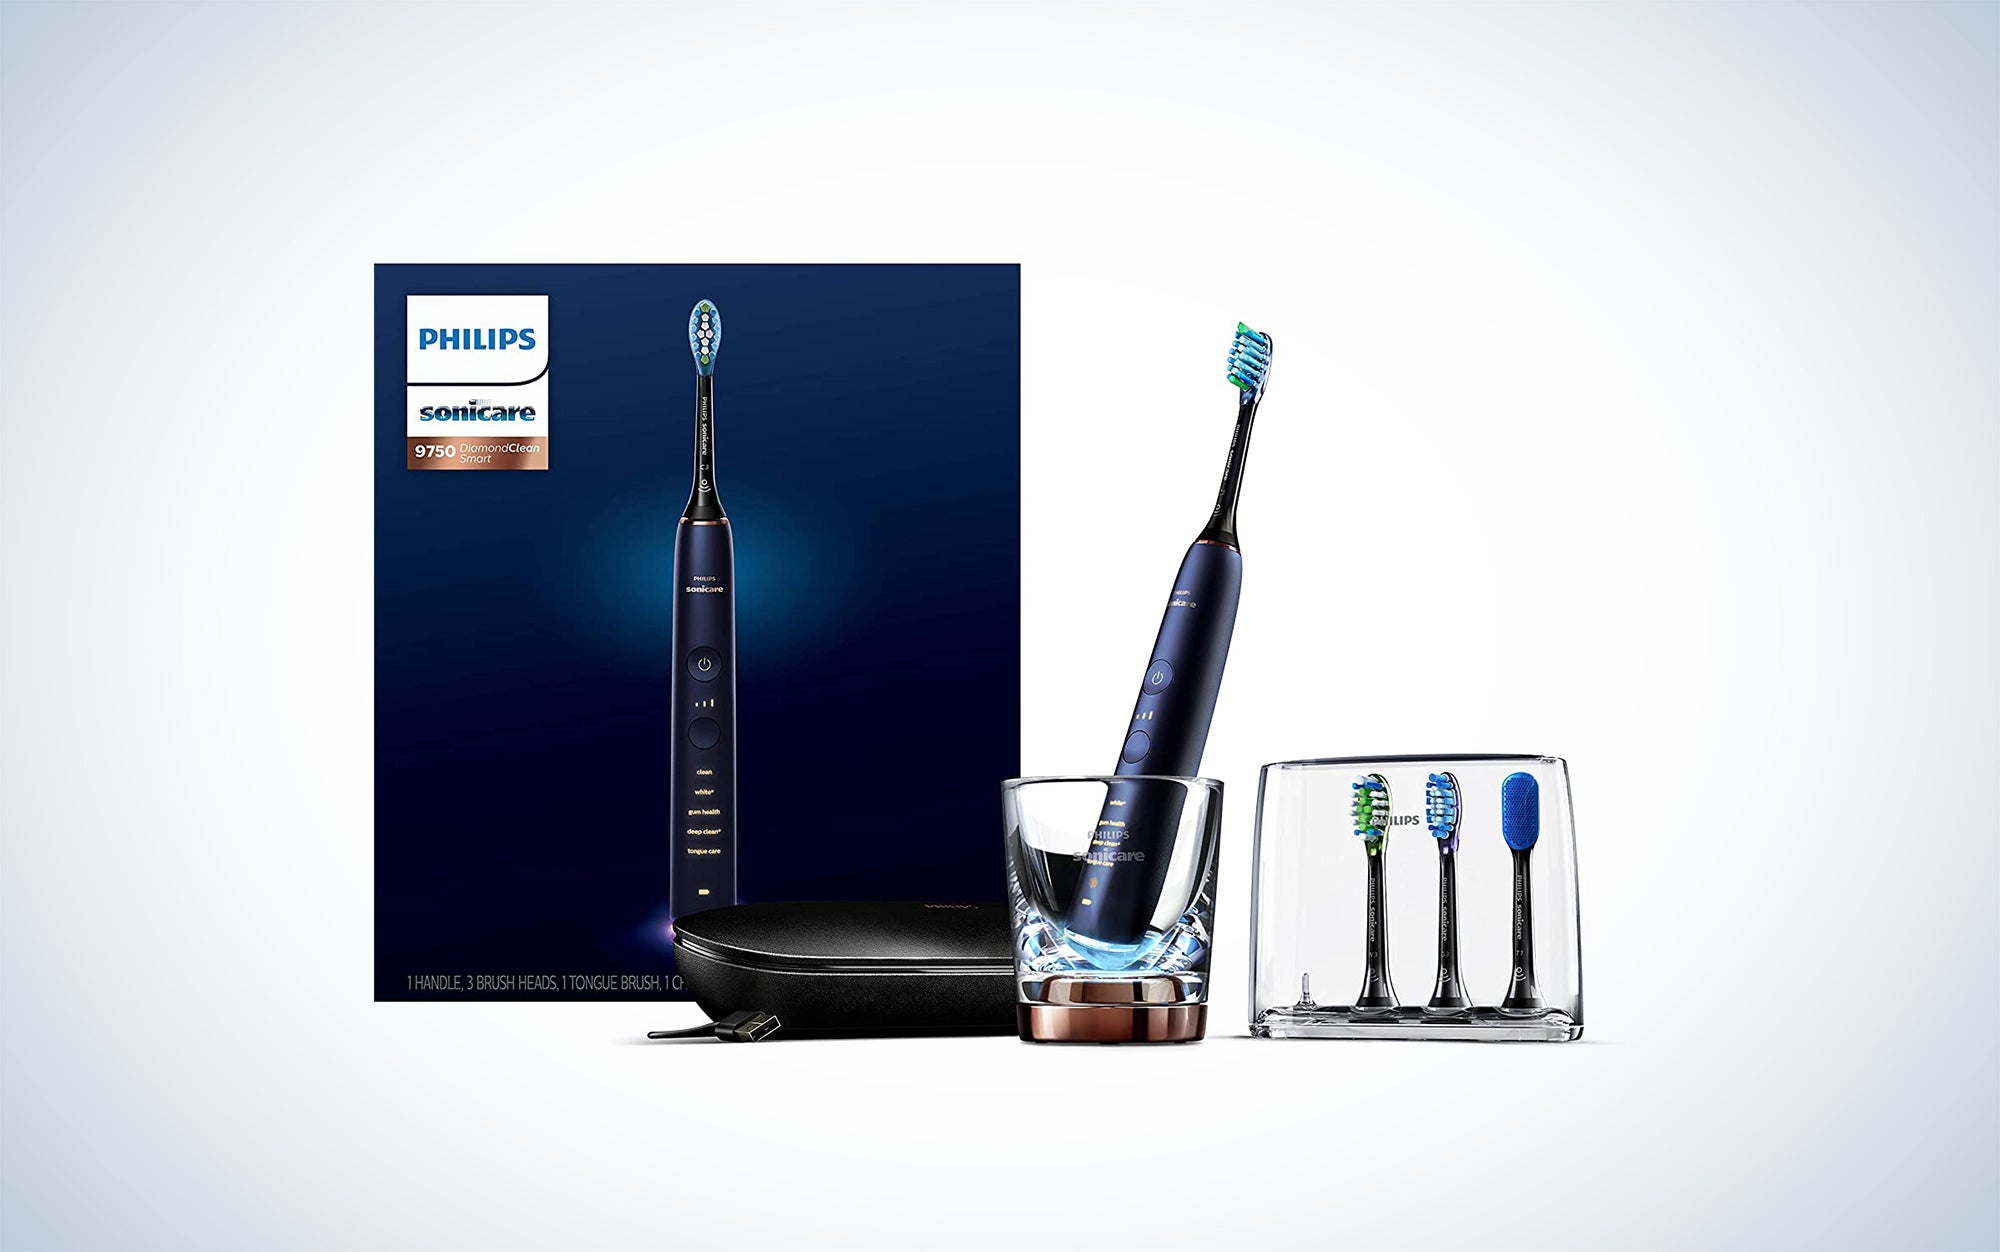 Philips Sonicare DiamondClean Smart 9750 Rechargeable Electric Toothbrush is one of the best Philips electric toothbrush options.